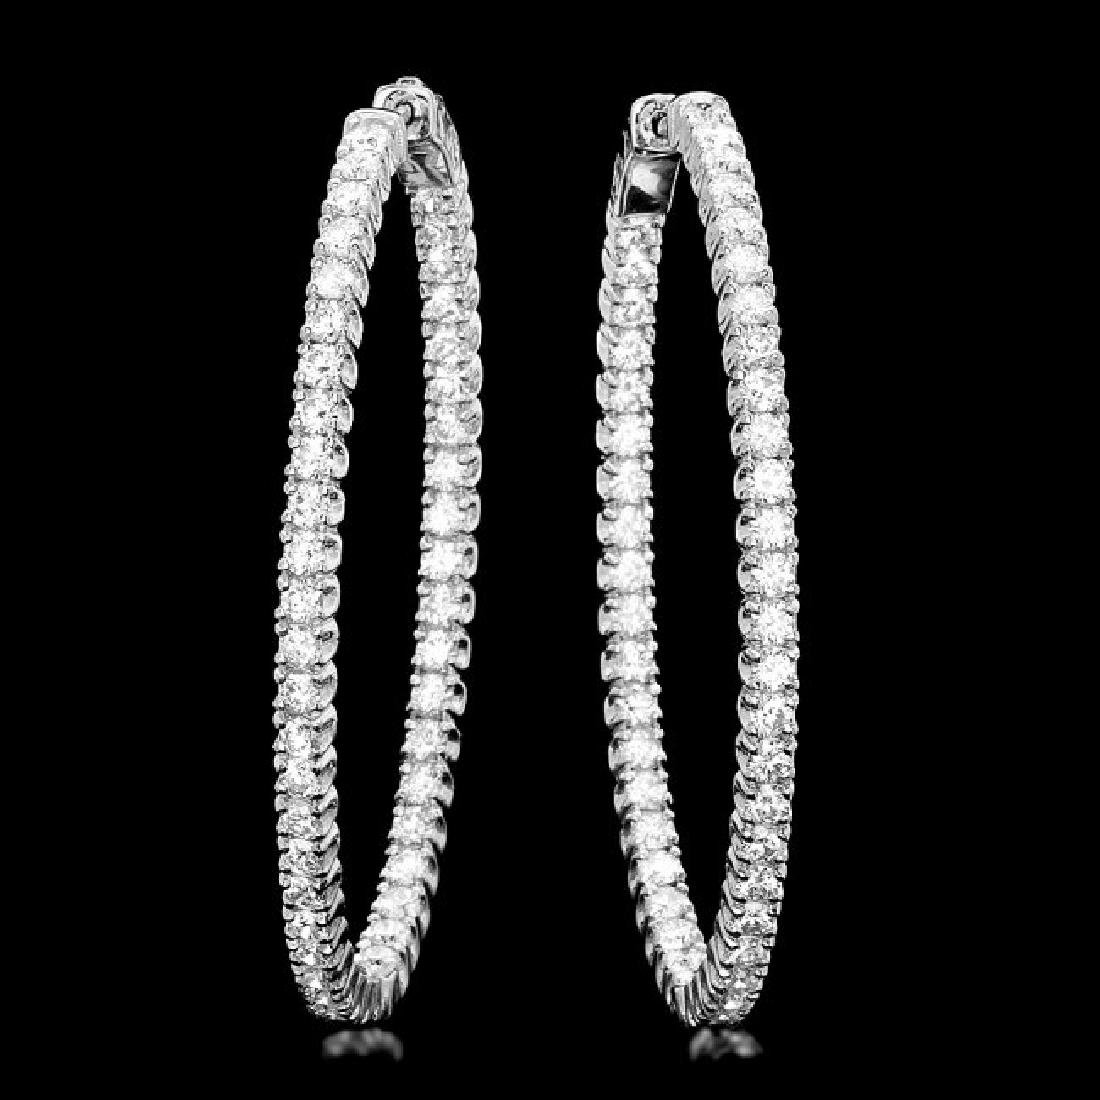 14k White Gold 5.20ct Diamond Earrings